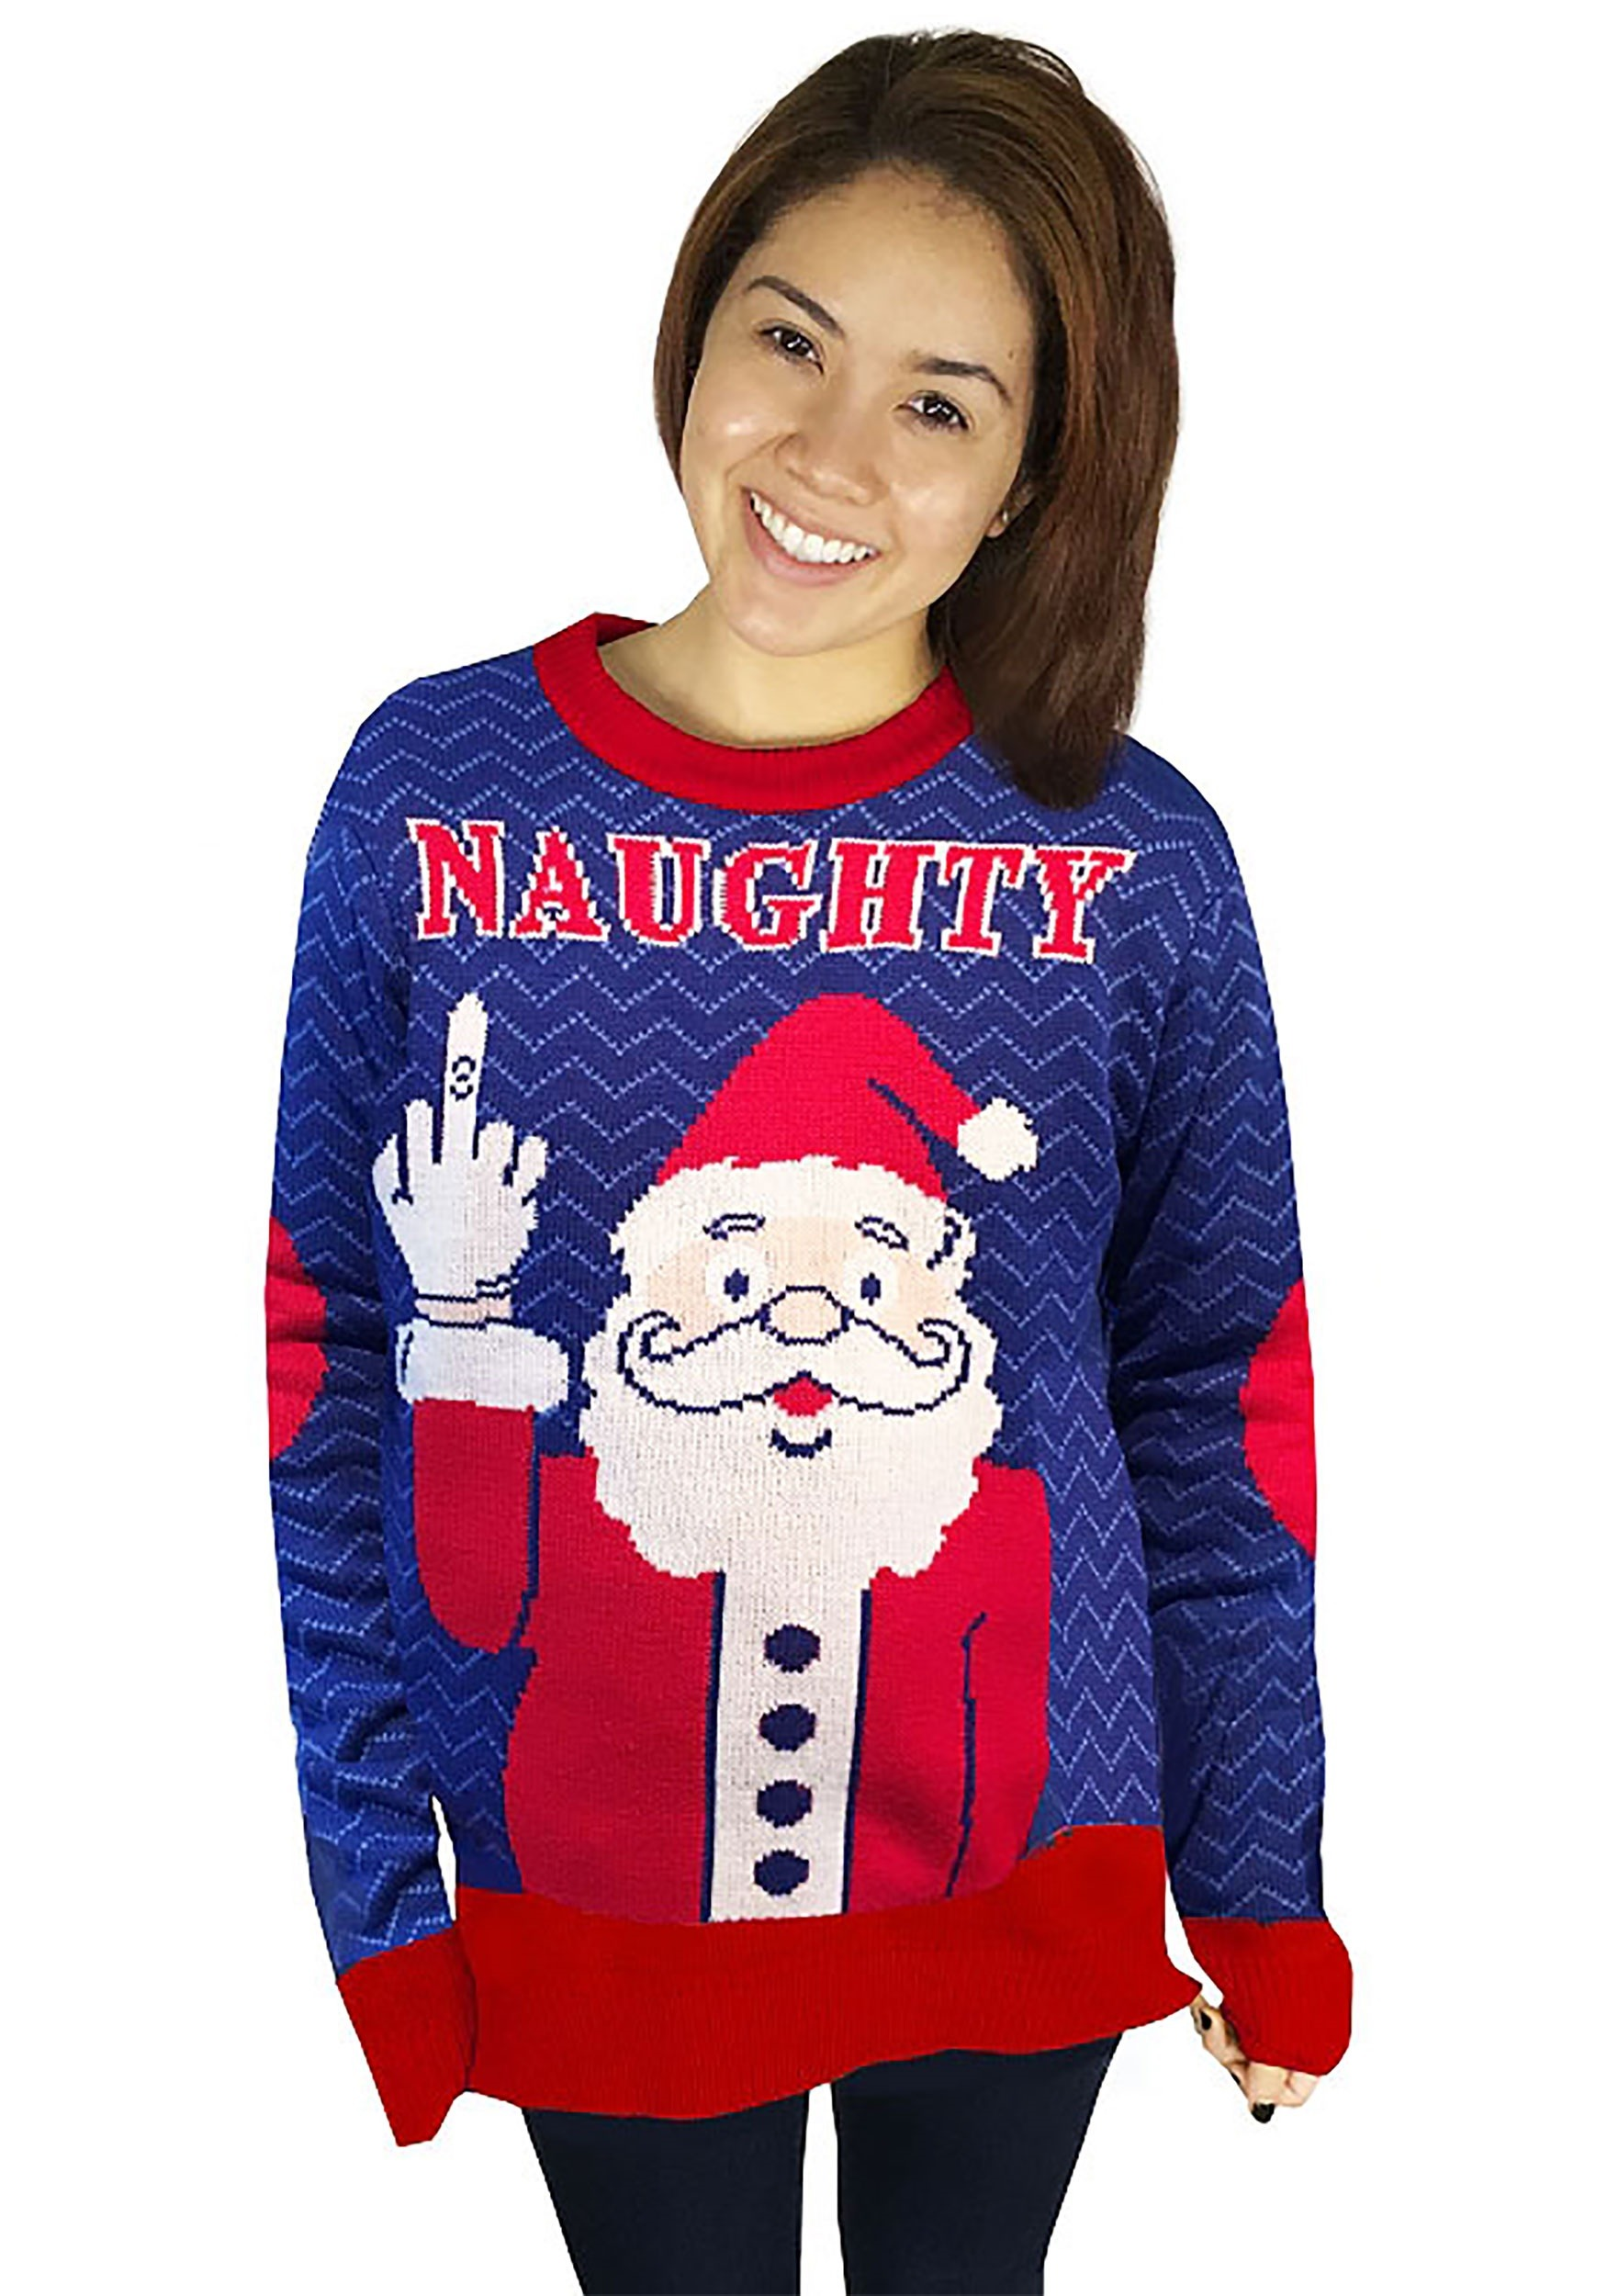 Naughty Santa Ugly Christmas Sweater for Adults